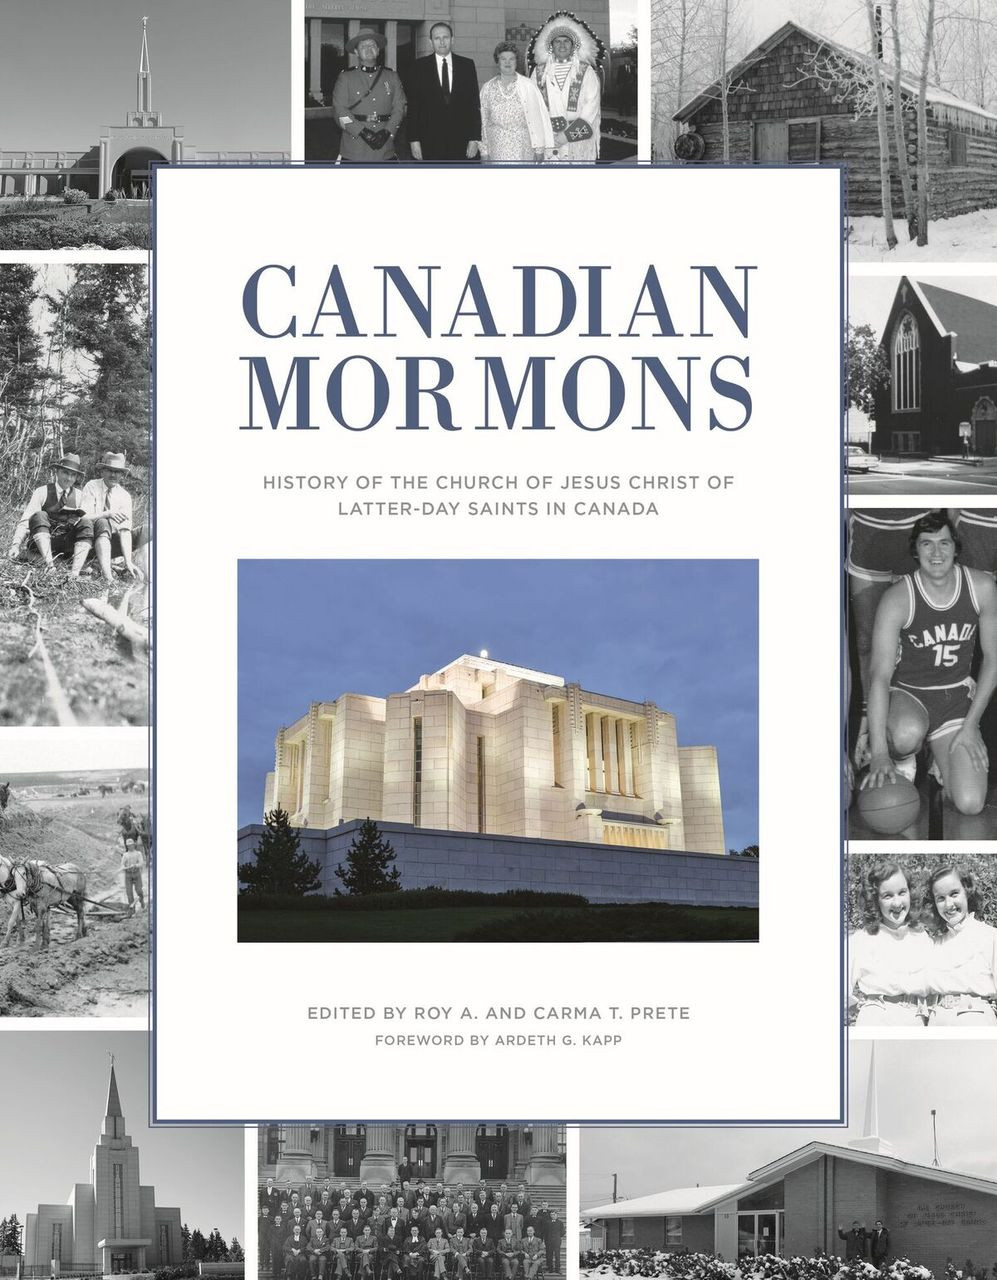 Canadian Mormons History Of The Church Jesus Christ Latter